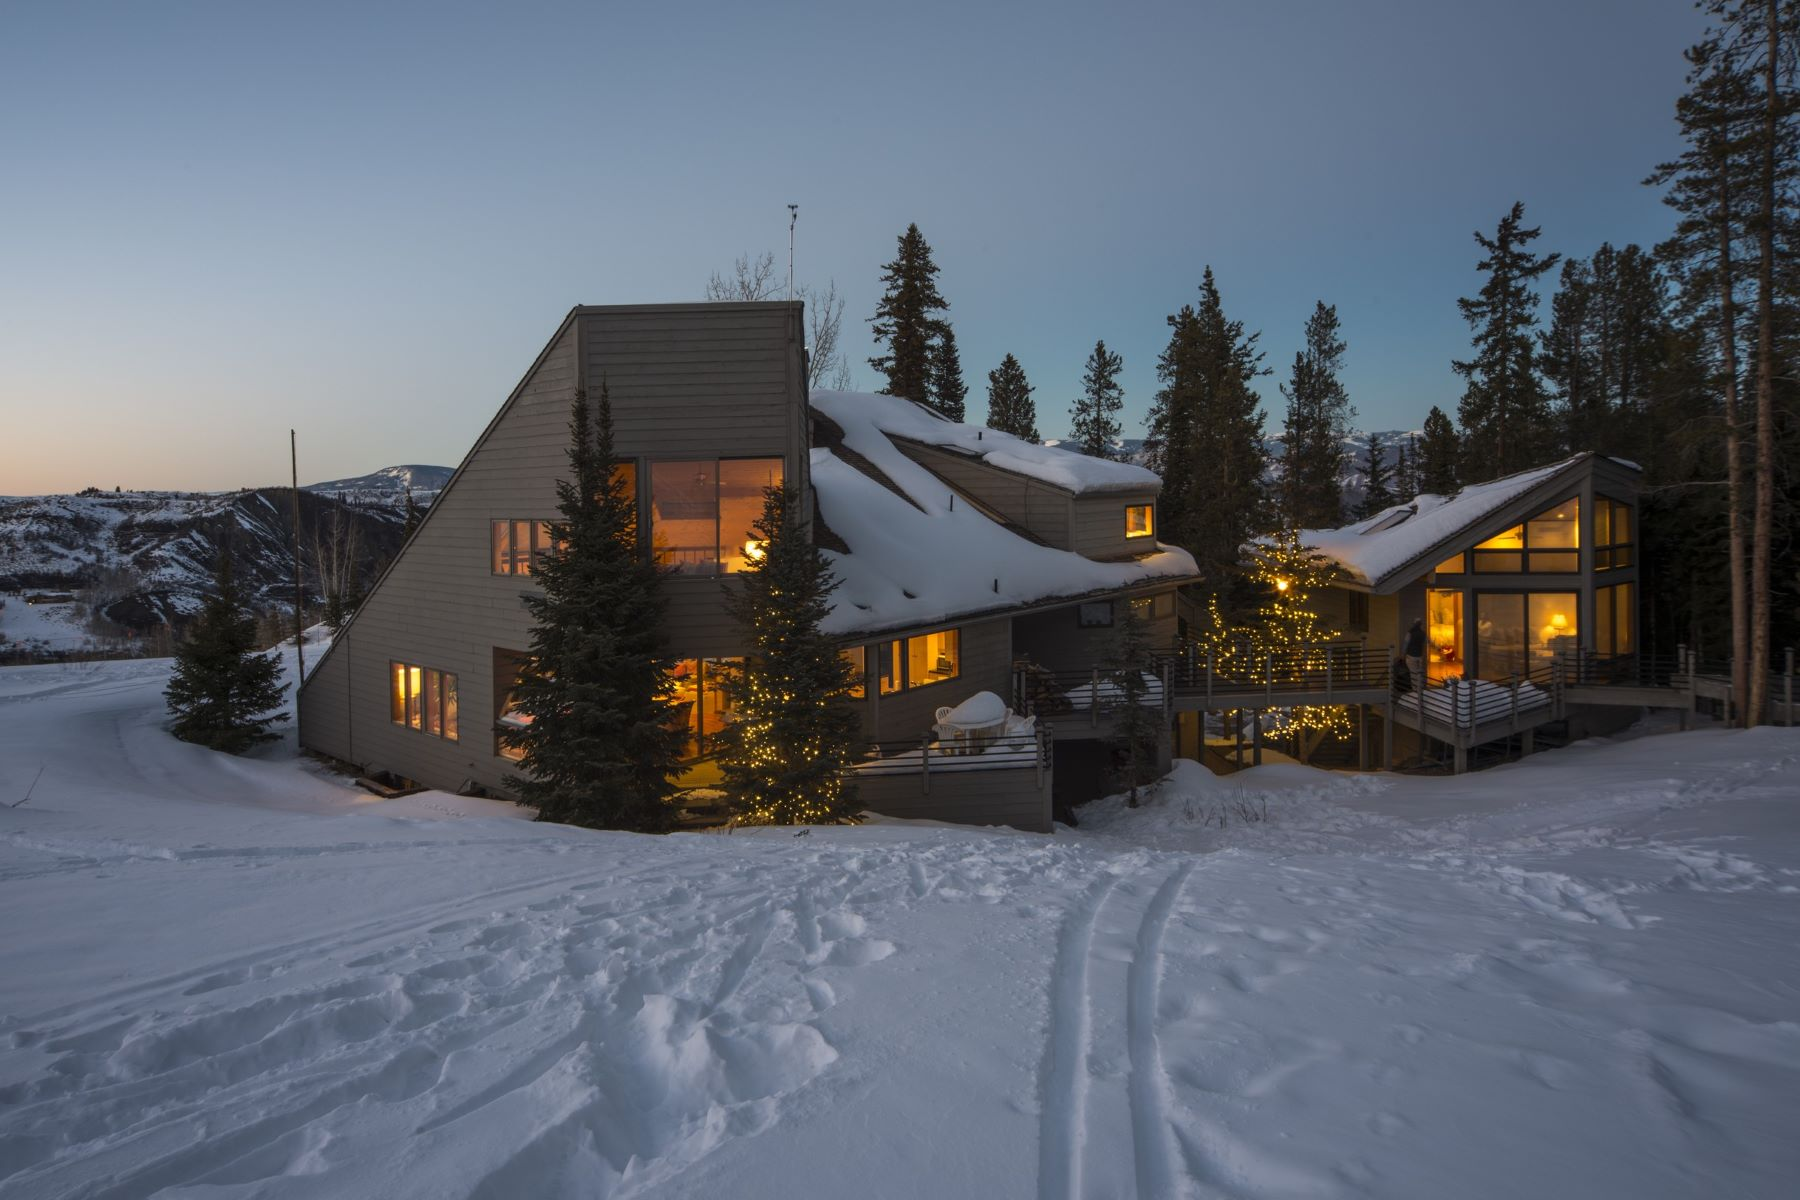 Single Family Homes for Sale at Snowmass Summit House 85 Pine Lane Snowmass Village, Colorado 81615 United States